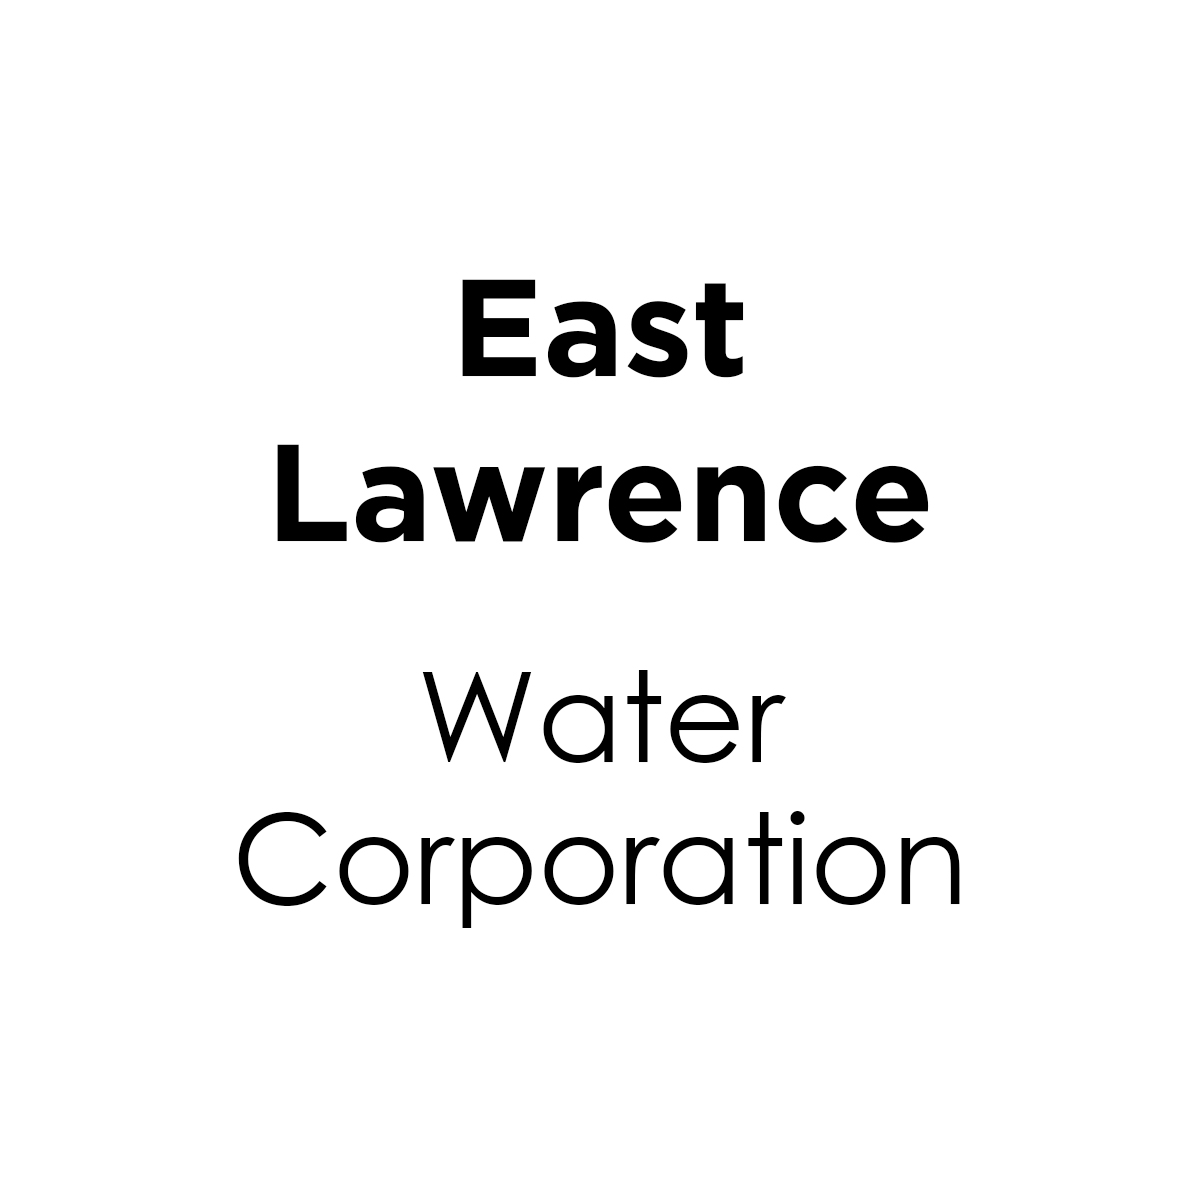 East Lawrence Water Corporation